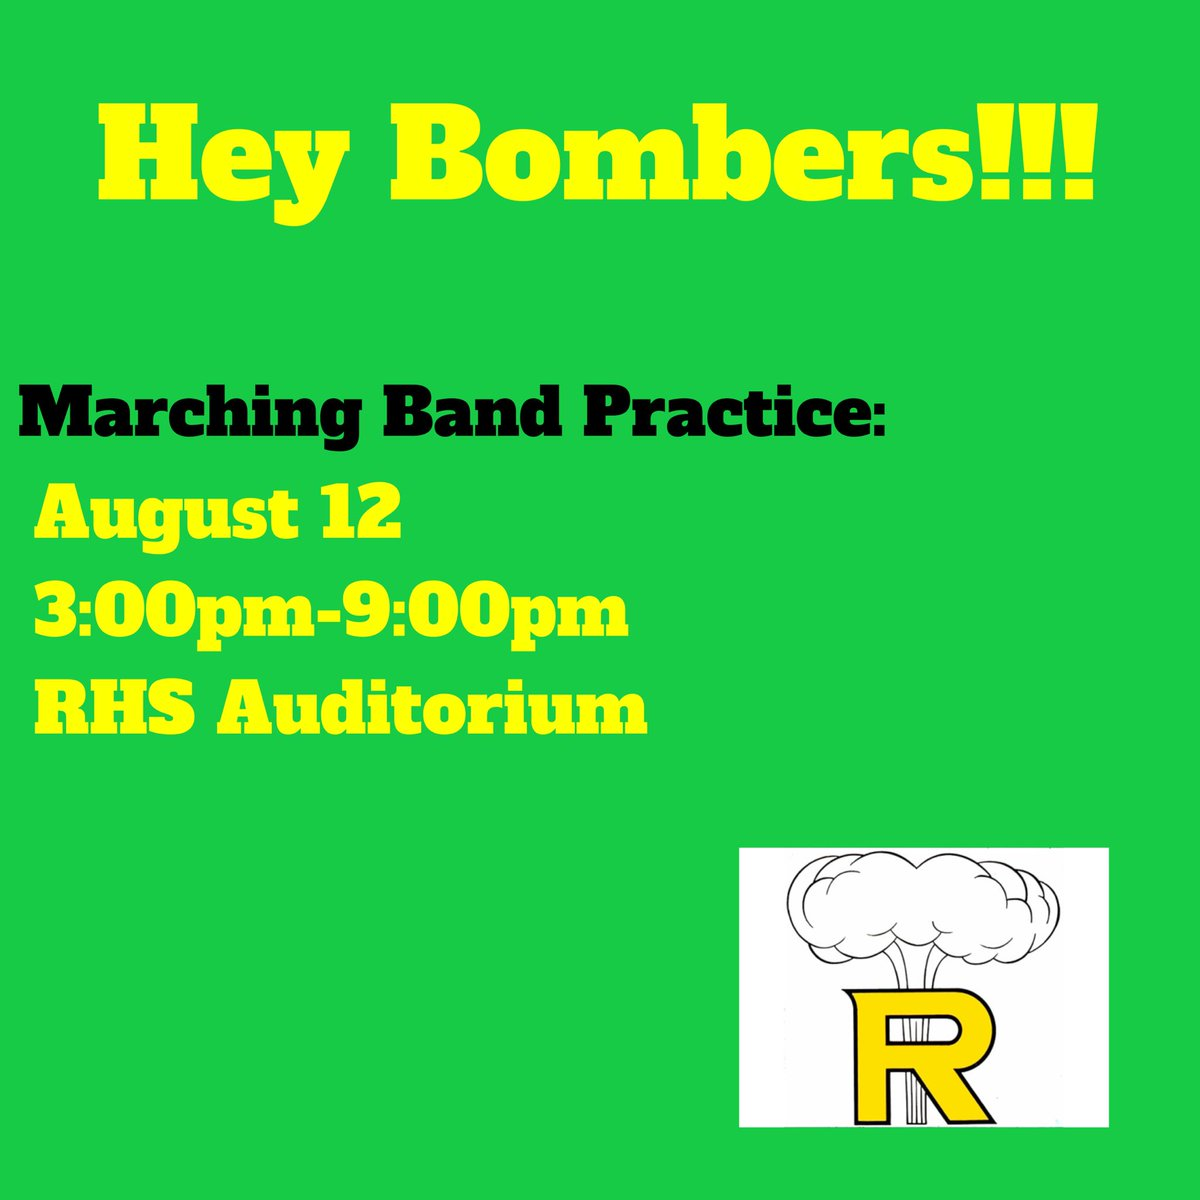 Marching Band Practice!!💛💚 August 12th 3pm-9pm Rhs Auditorium https://t.co/lNaD5i3QmX